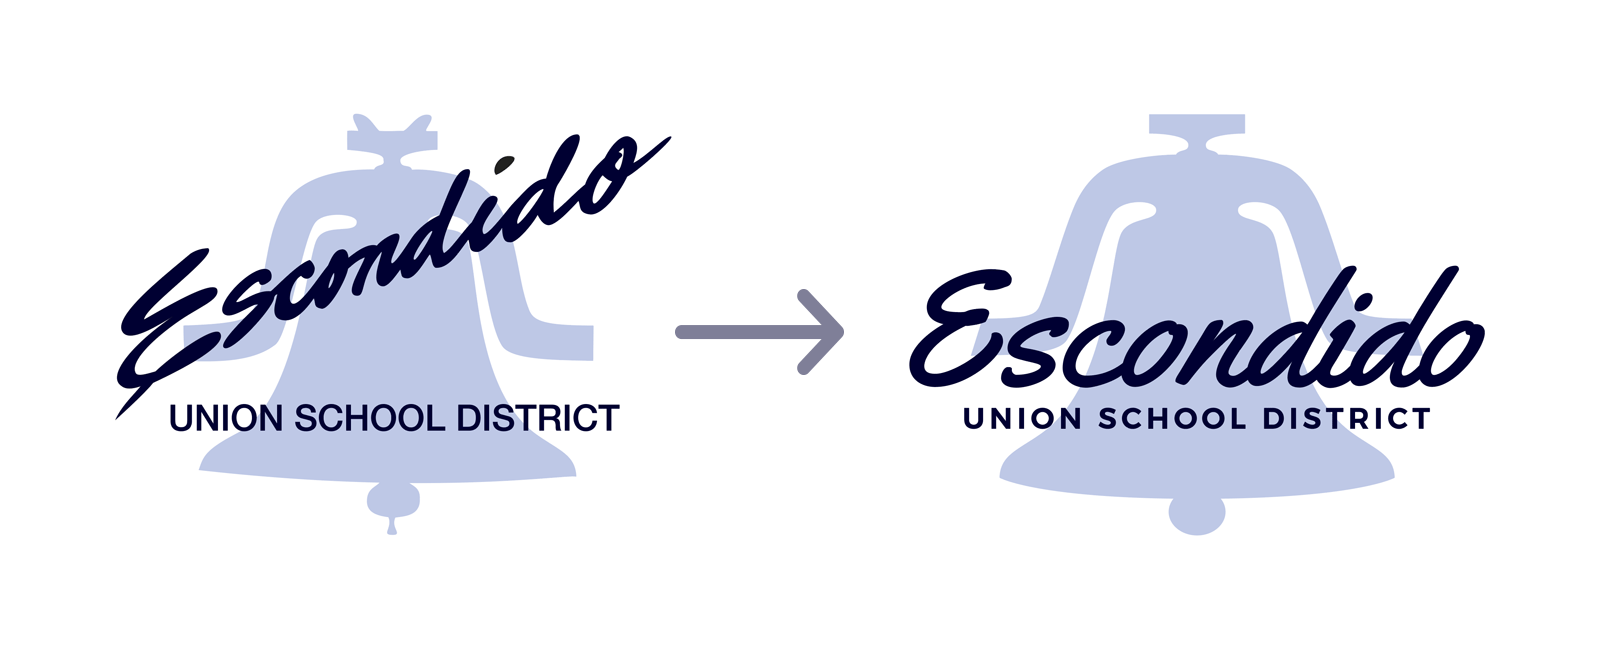 A before & after with old logo at left & updated logo at right. Both show a bell behind the words Escondido Union School District.